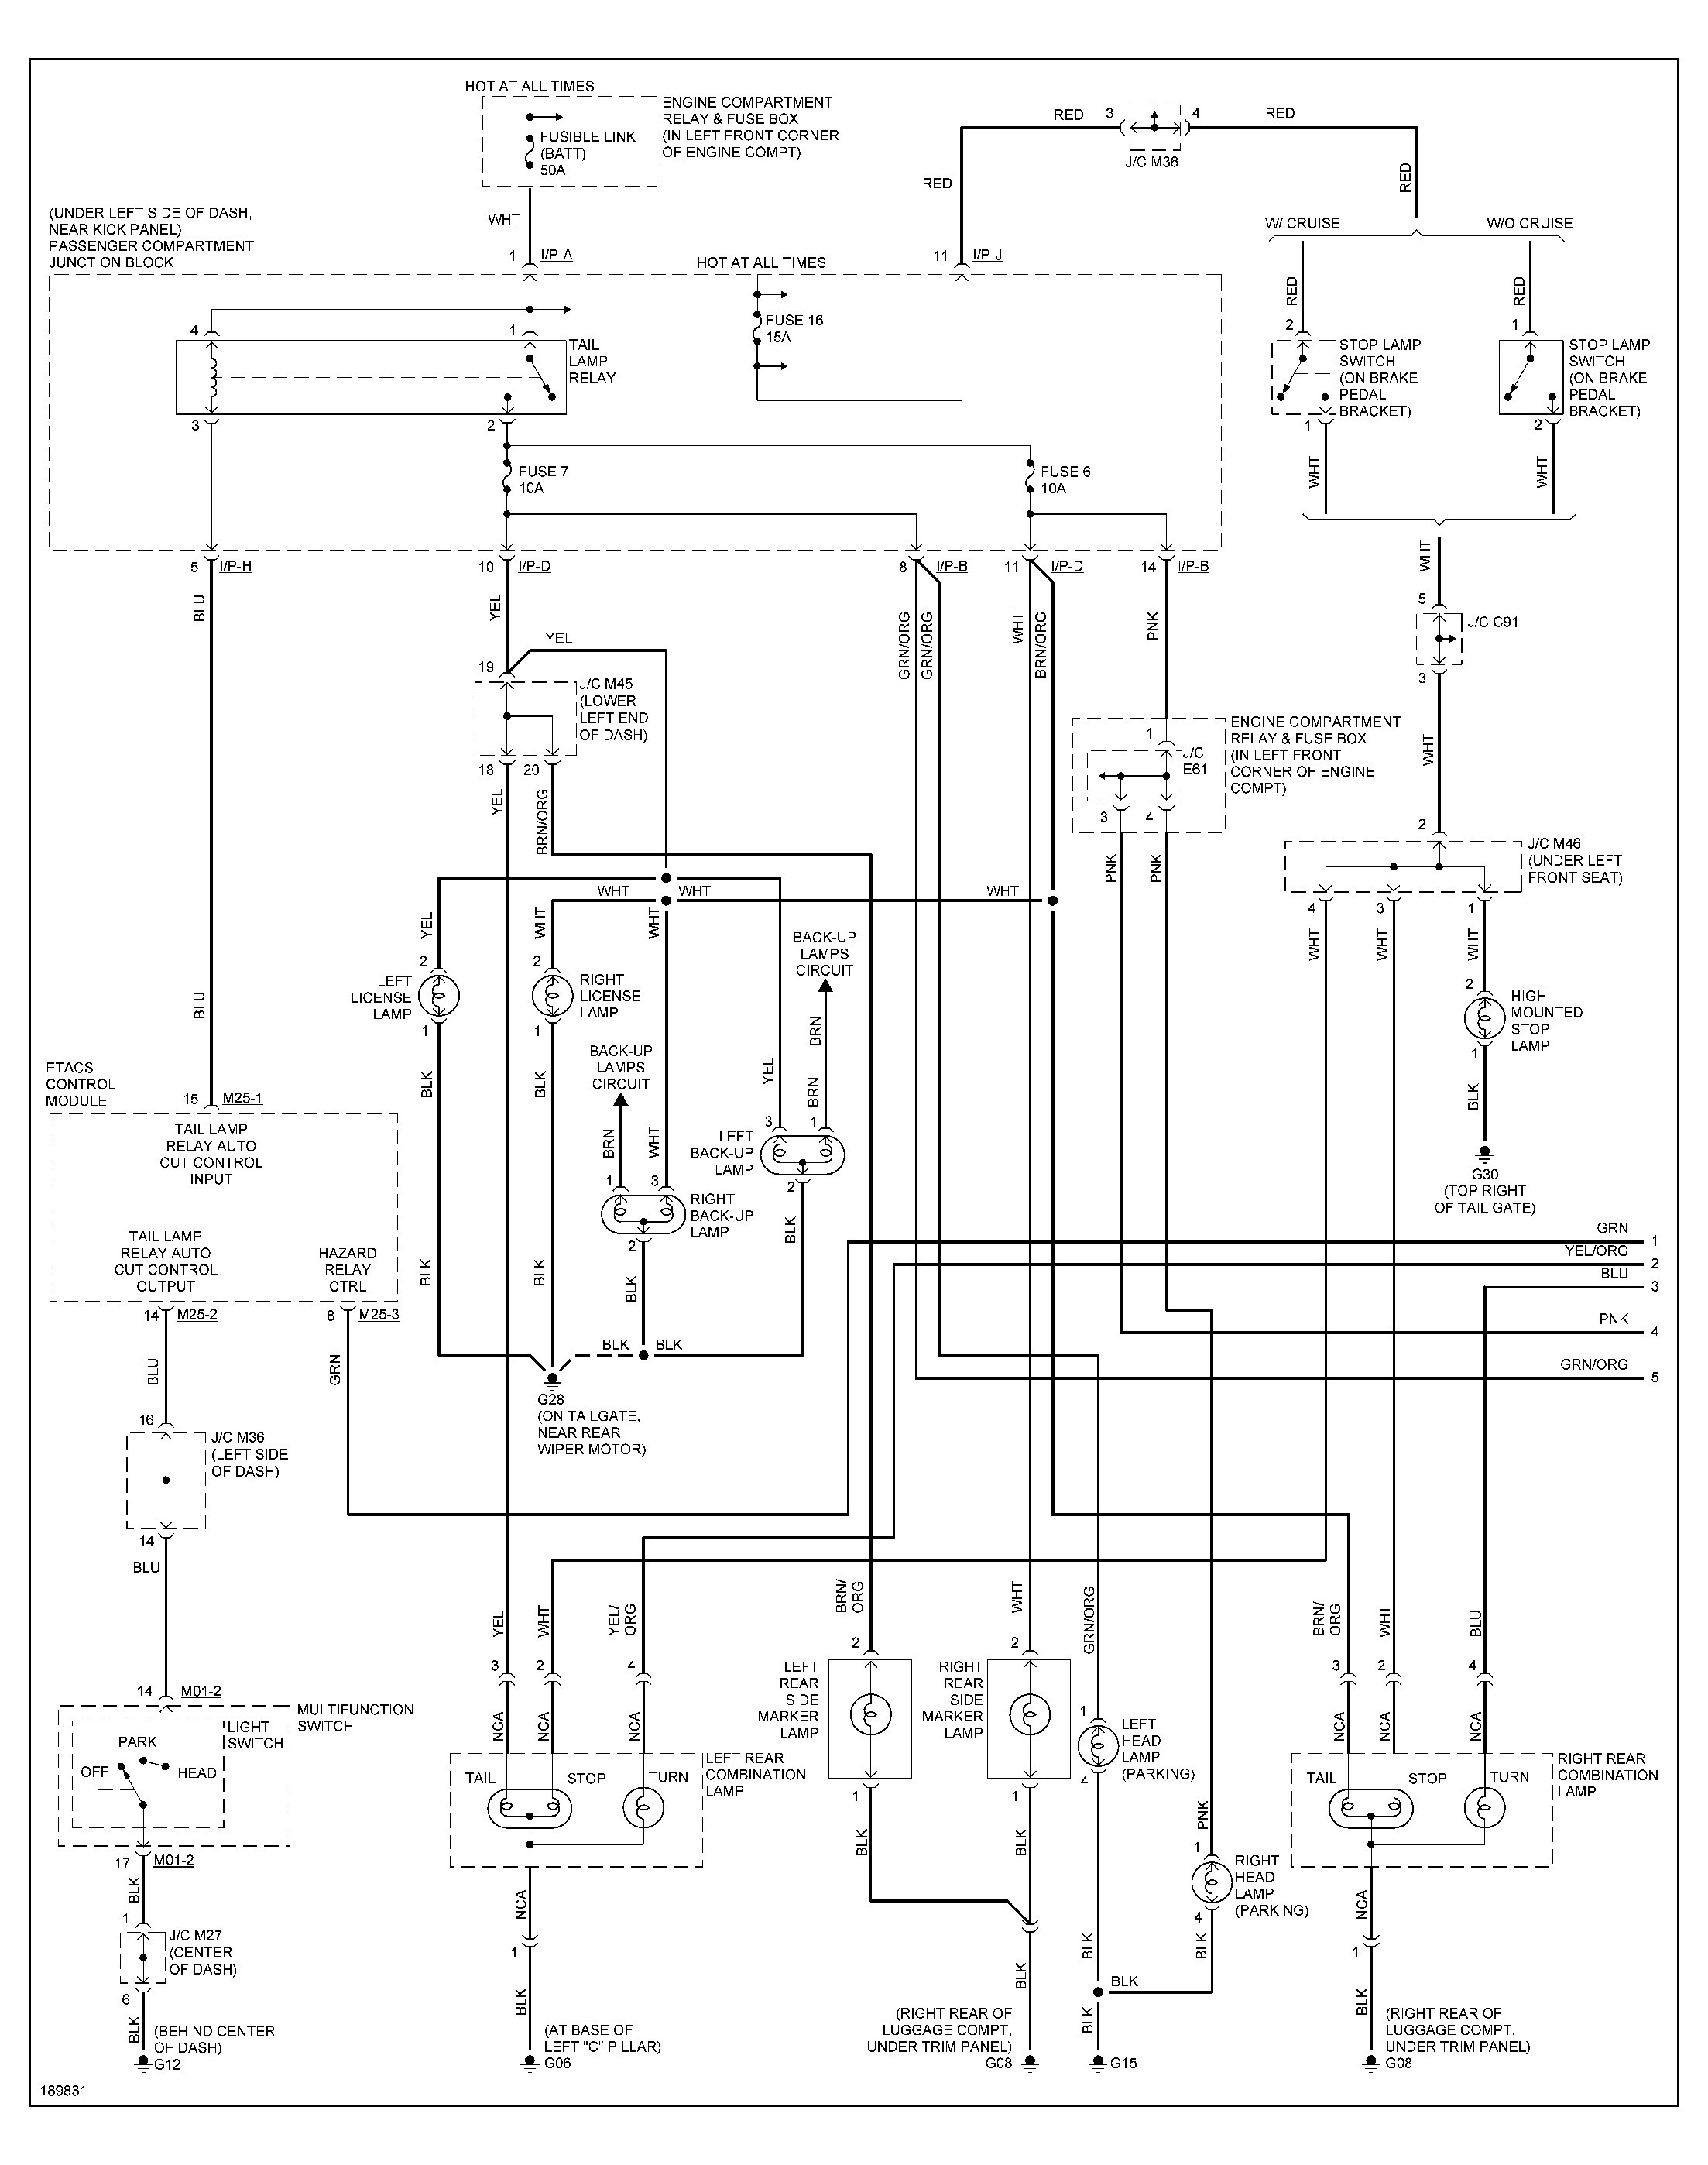 wiring diagram for 2004 hyundai elantra wiring diagram data schema